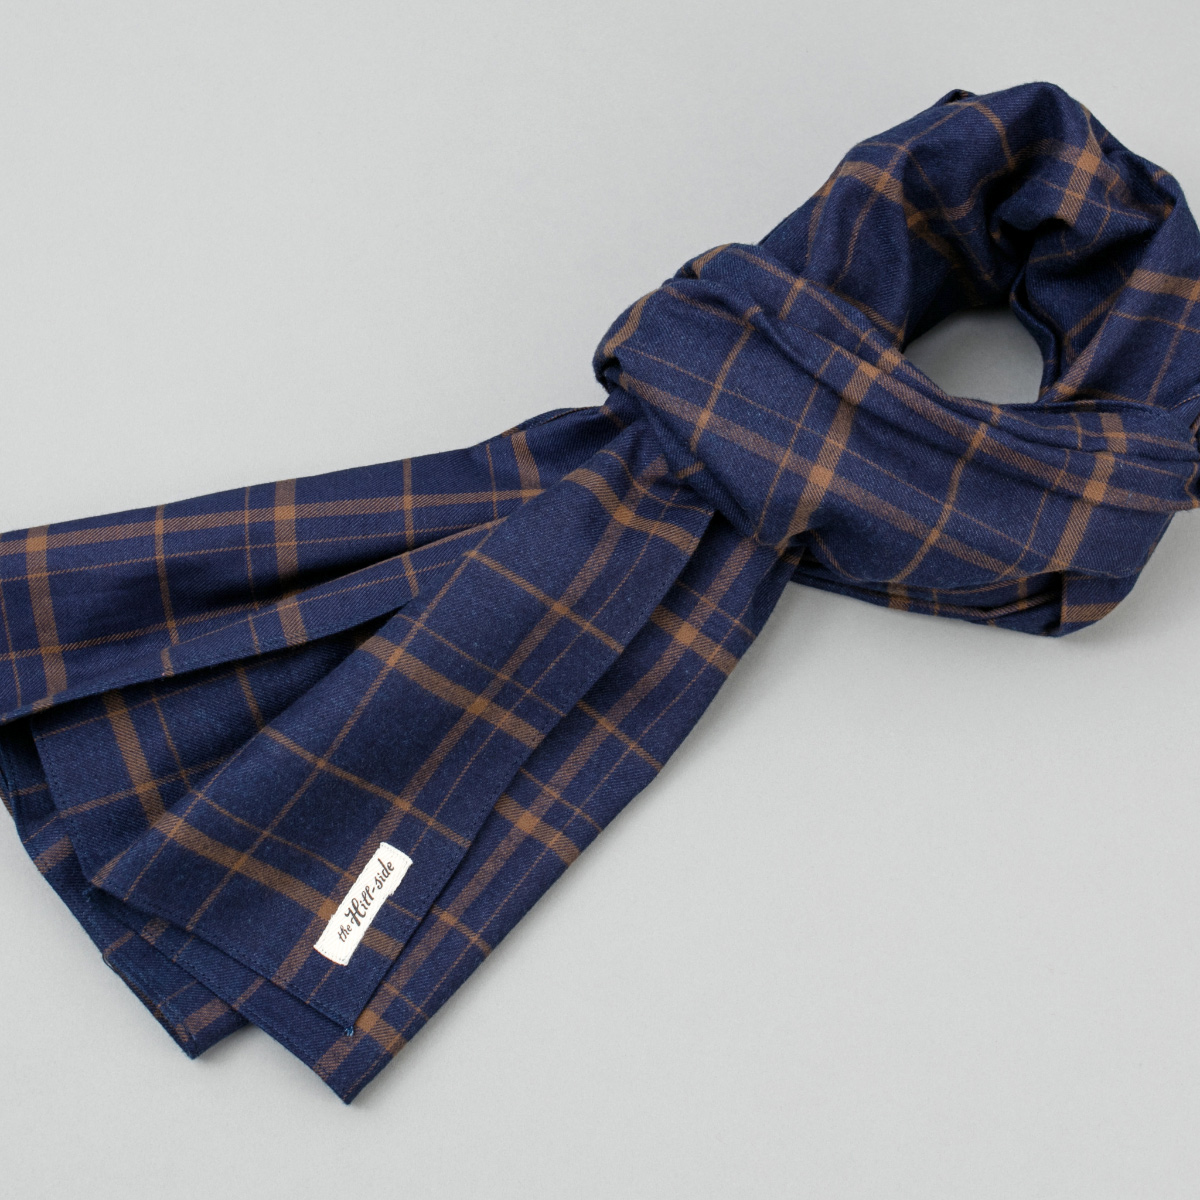 Indigo / Brown Flannel Check Scarf